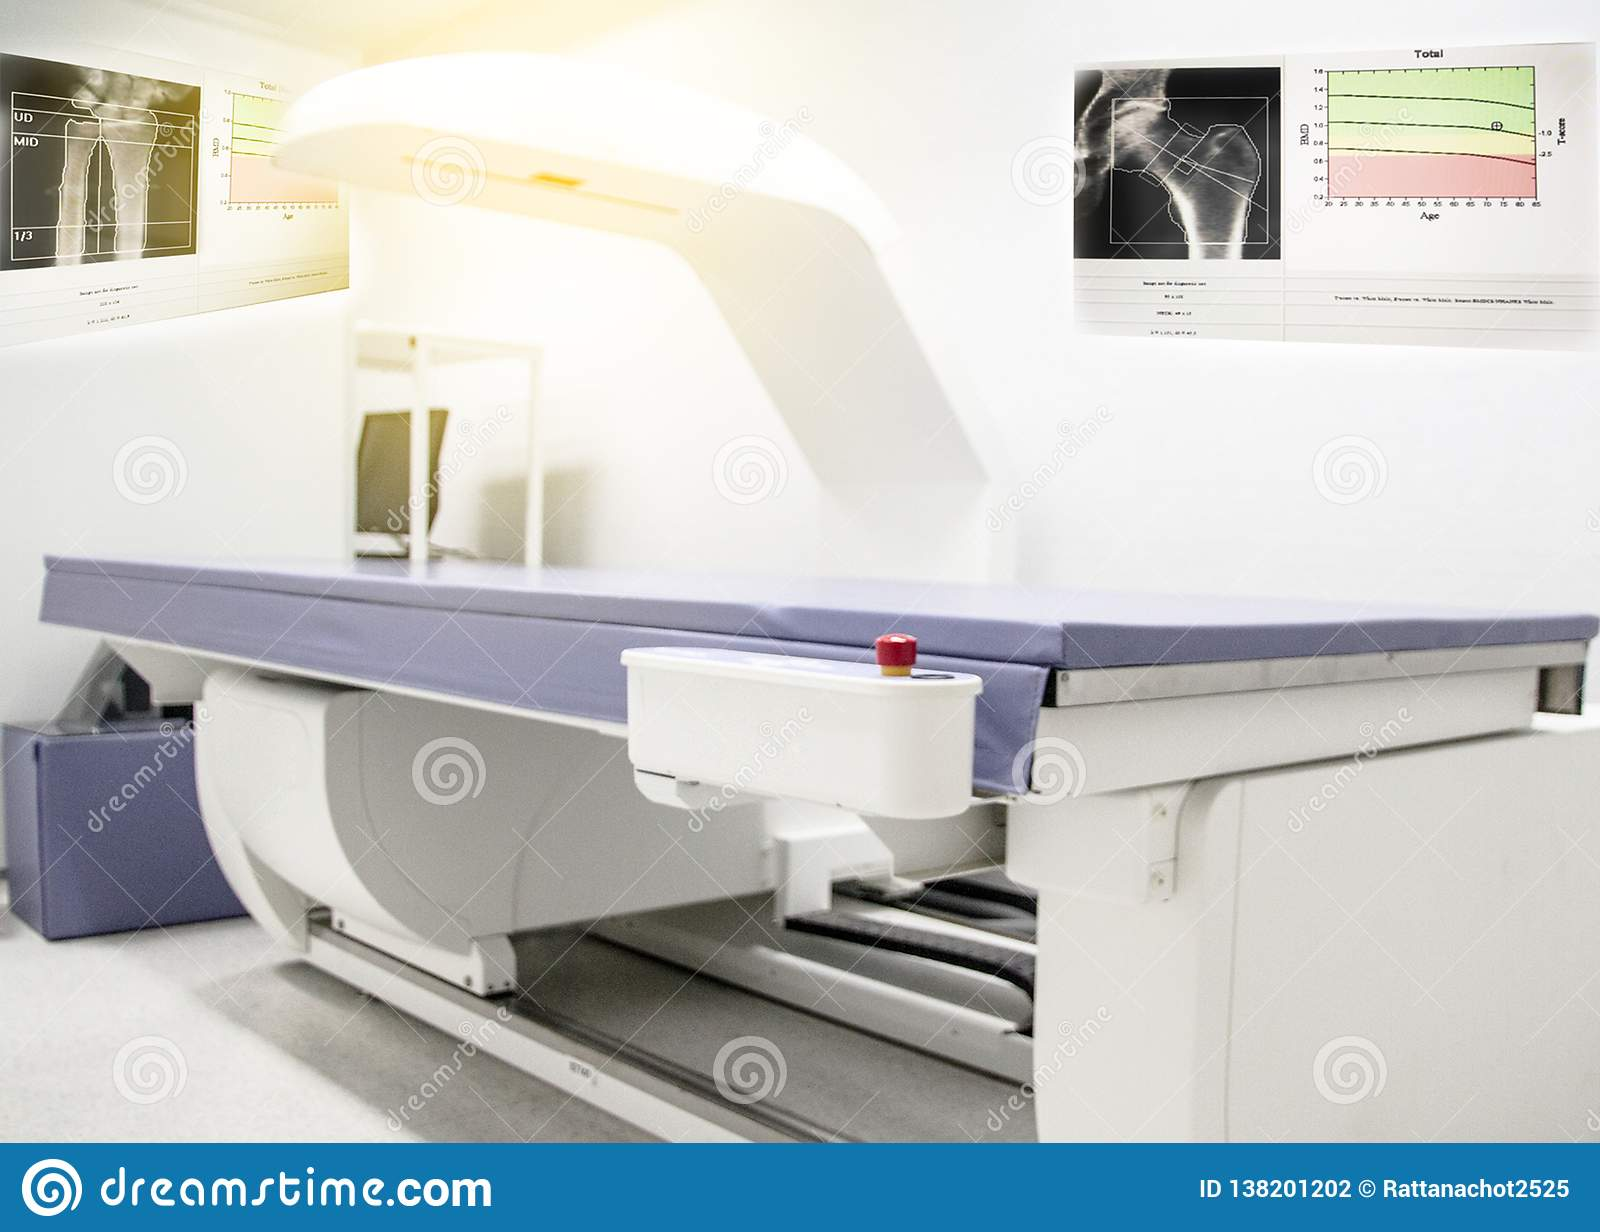 Bone density machine, is in the Xray department of hospital used for diagnose osteoporosis symptoms